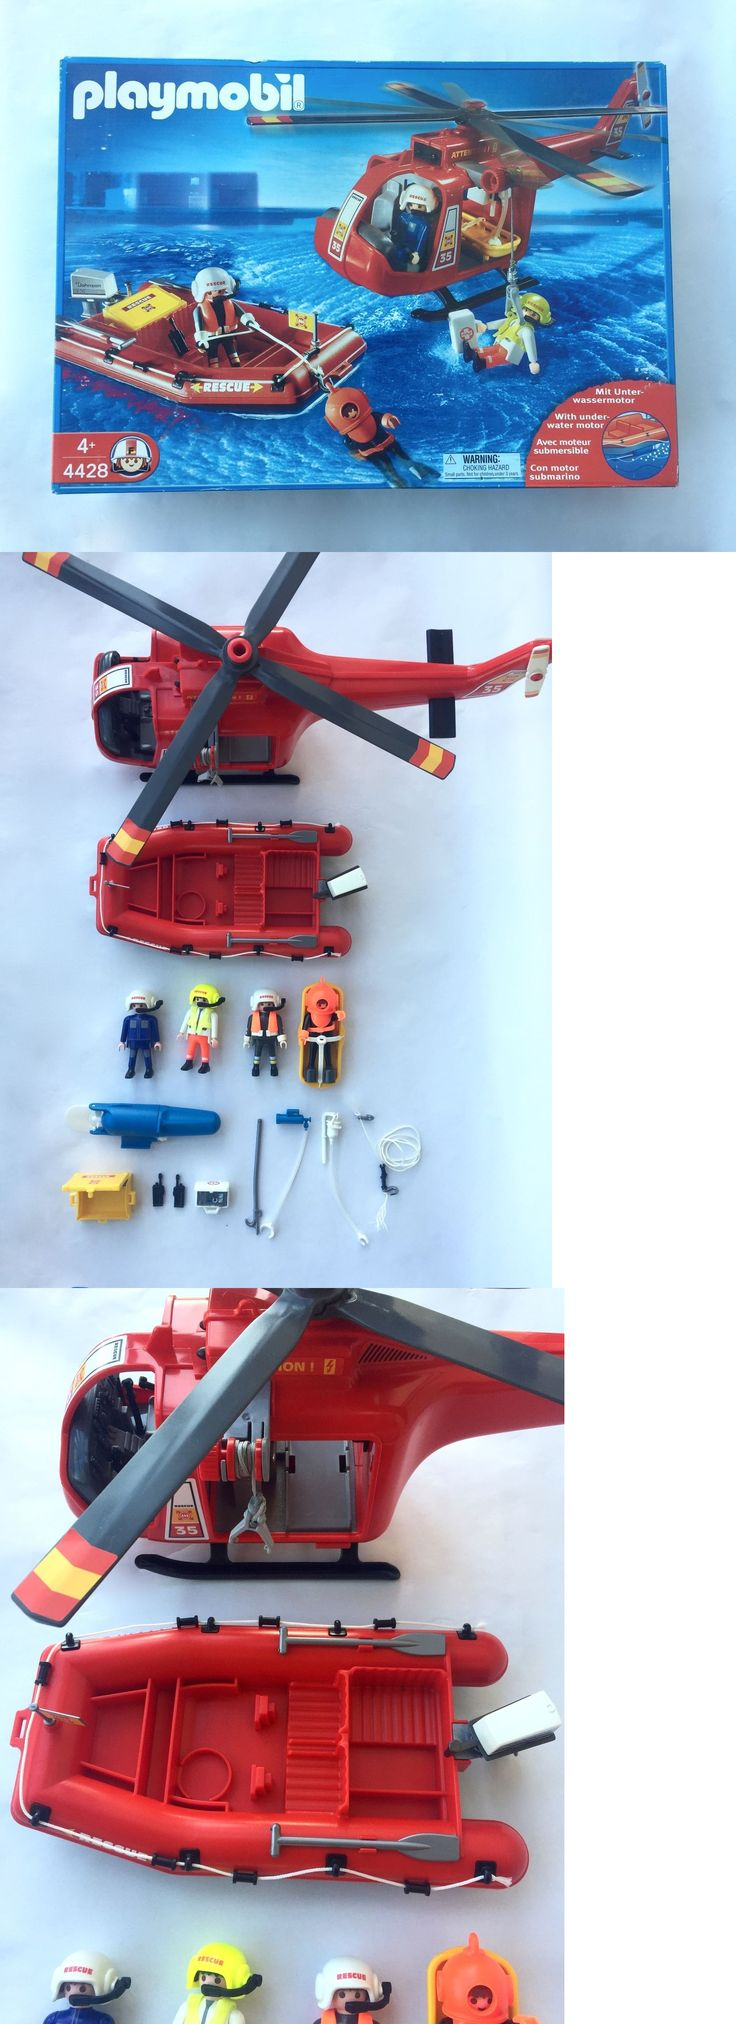 Playmobil 19854: Playmobil 4428 Set Rescue Helicopter And Raft -> BUY IT NOW ONLY: $59.99 on eBay!